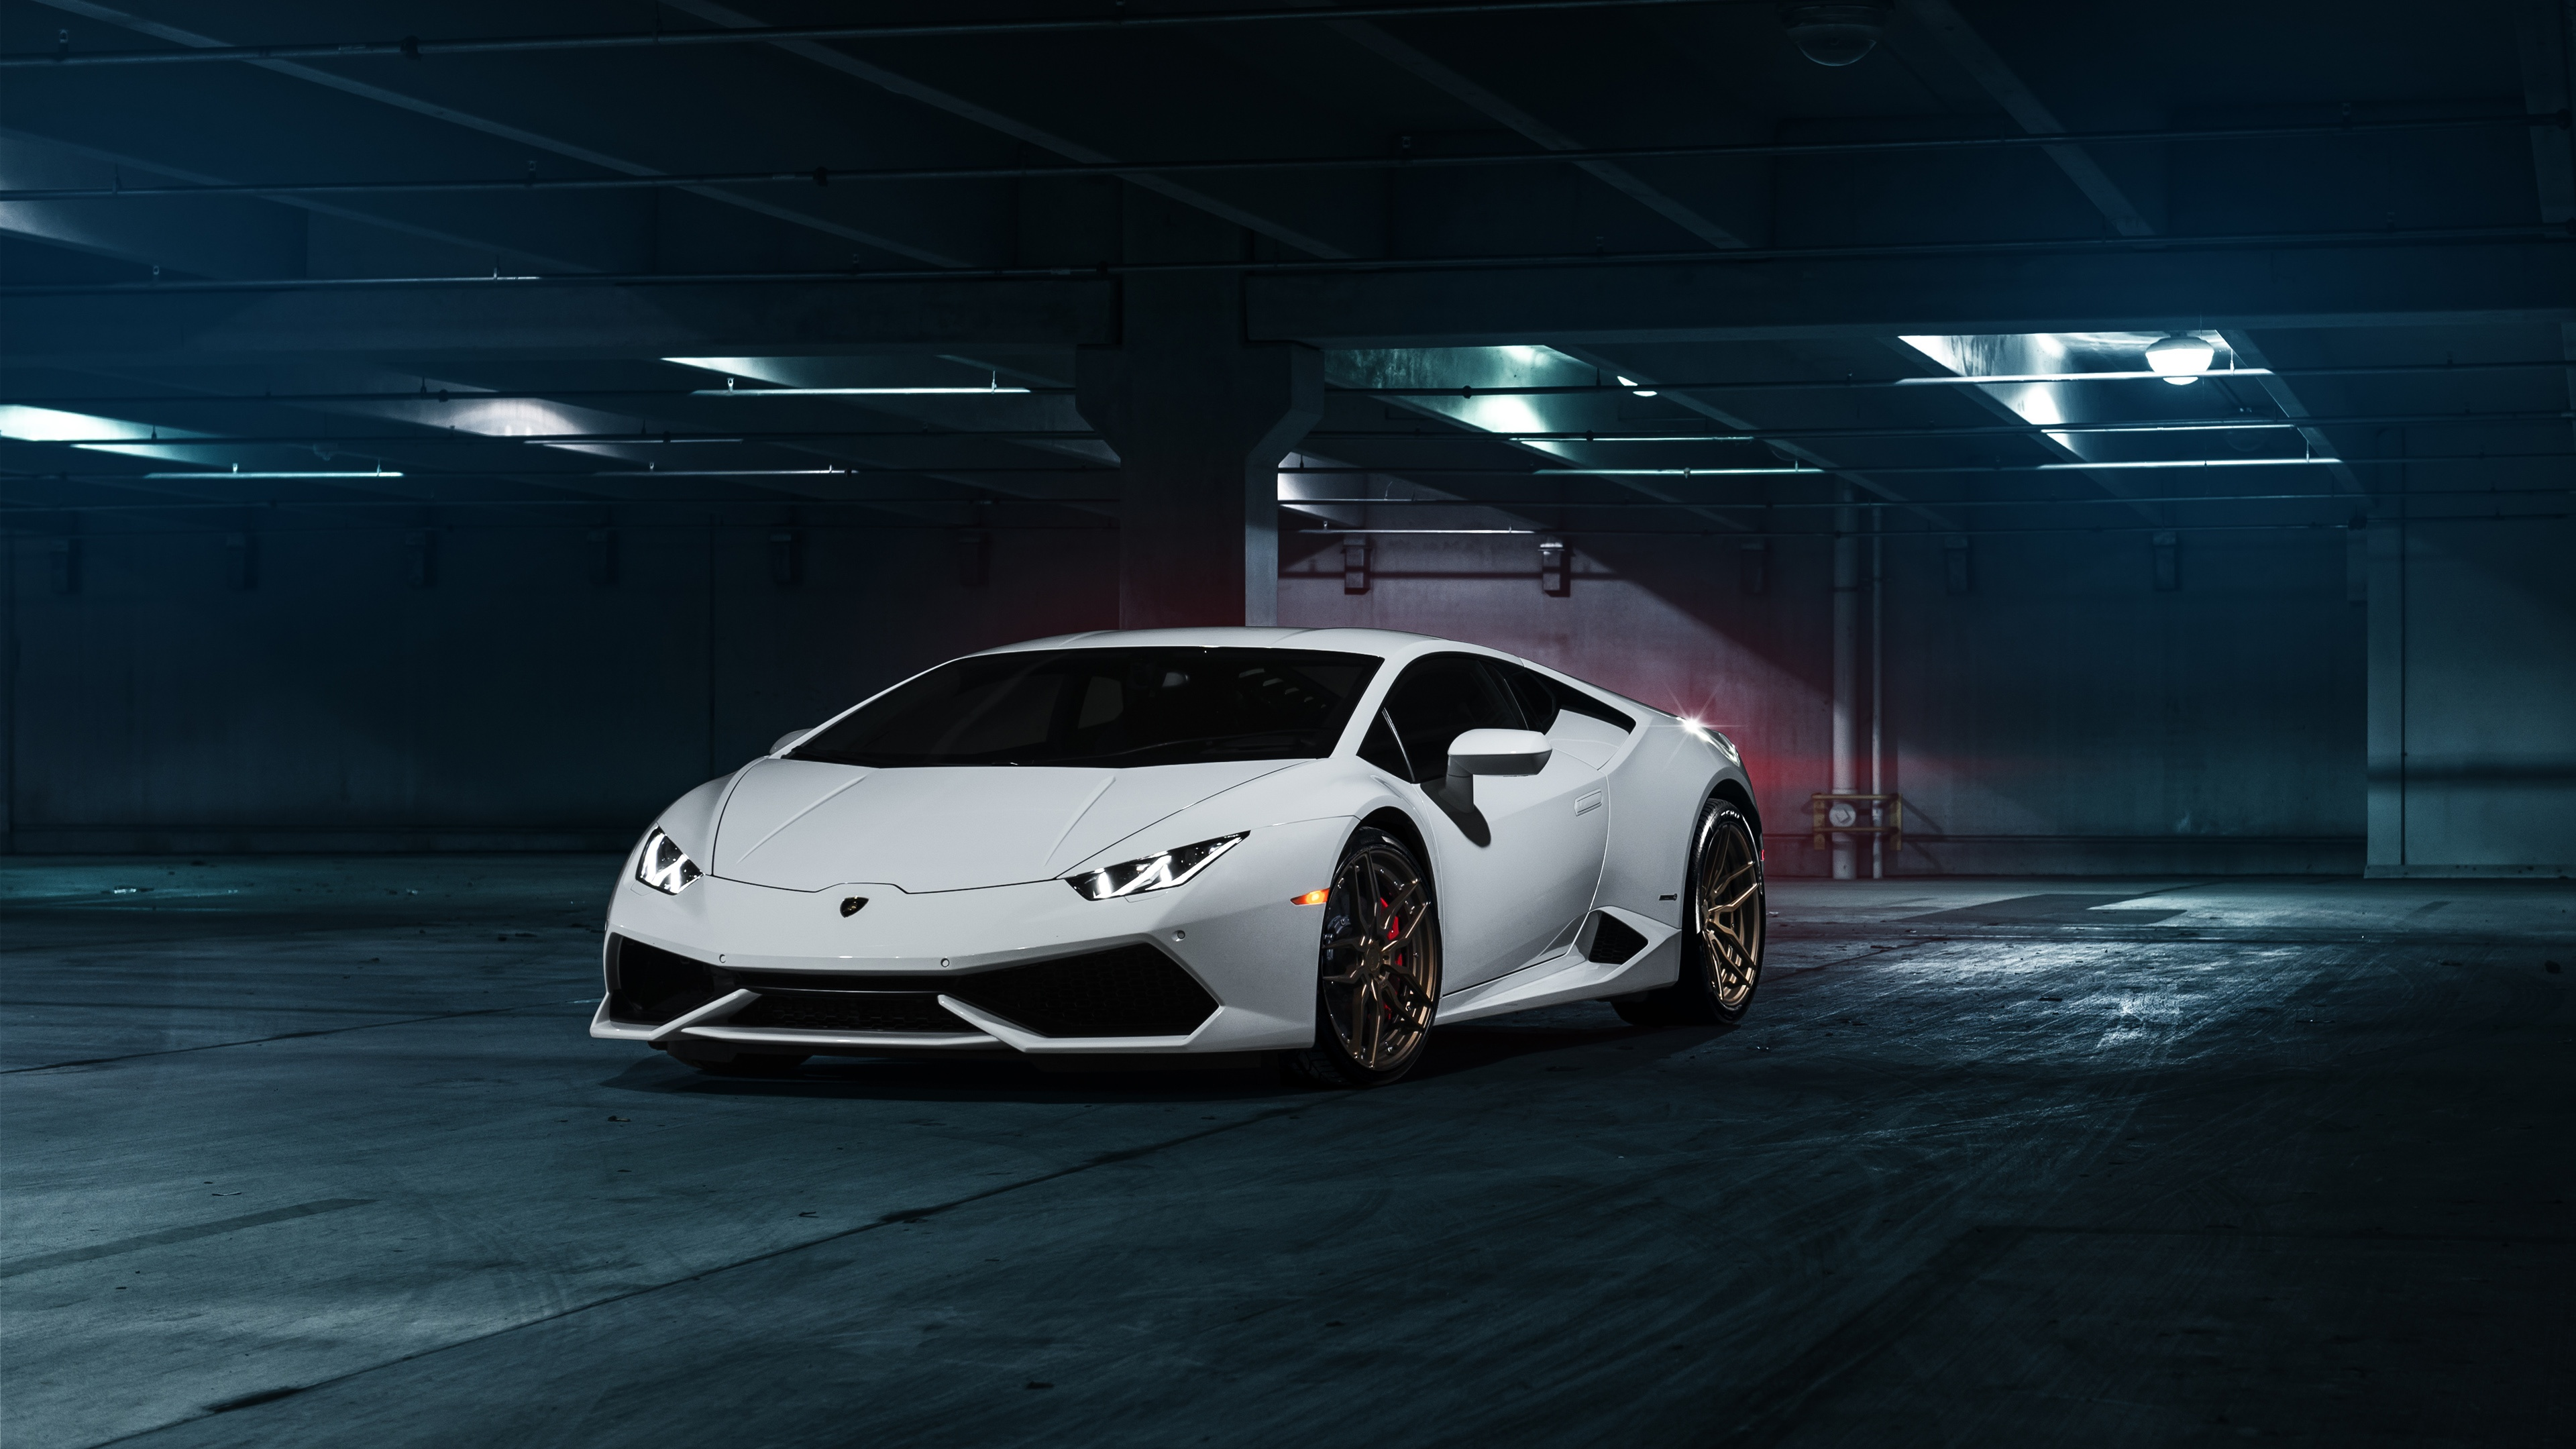 Adv1 Lamborghini Huracan 4139895 2880x1800 All For Desktop